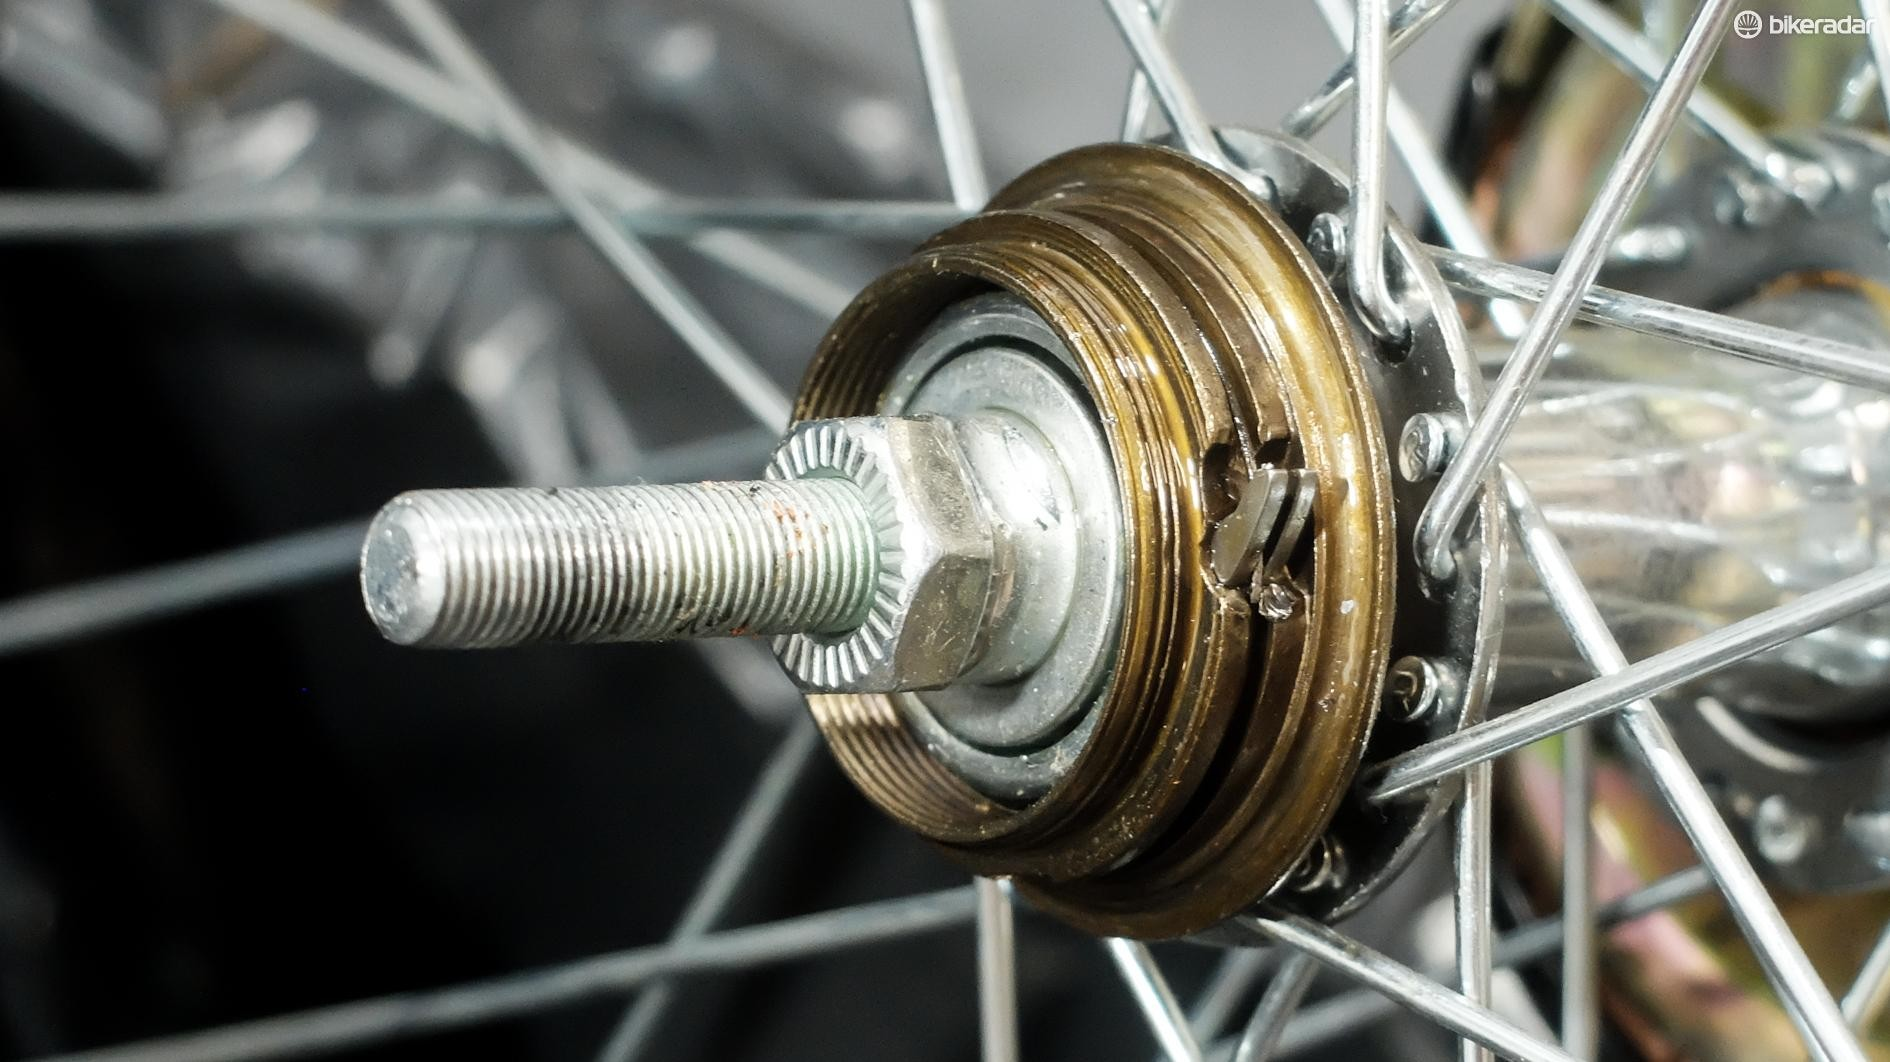 Efforts to remove the body of the freewheel proved fruitless